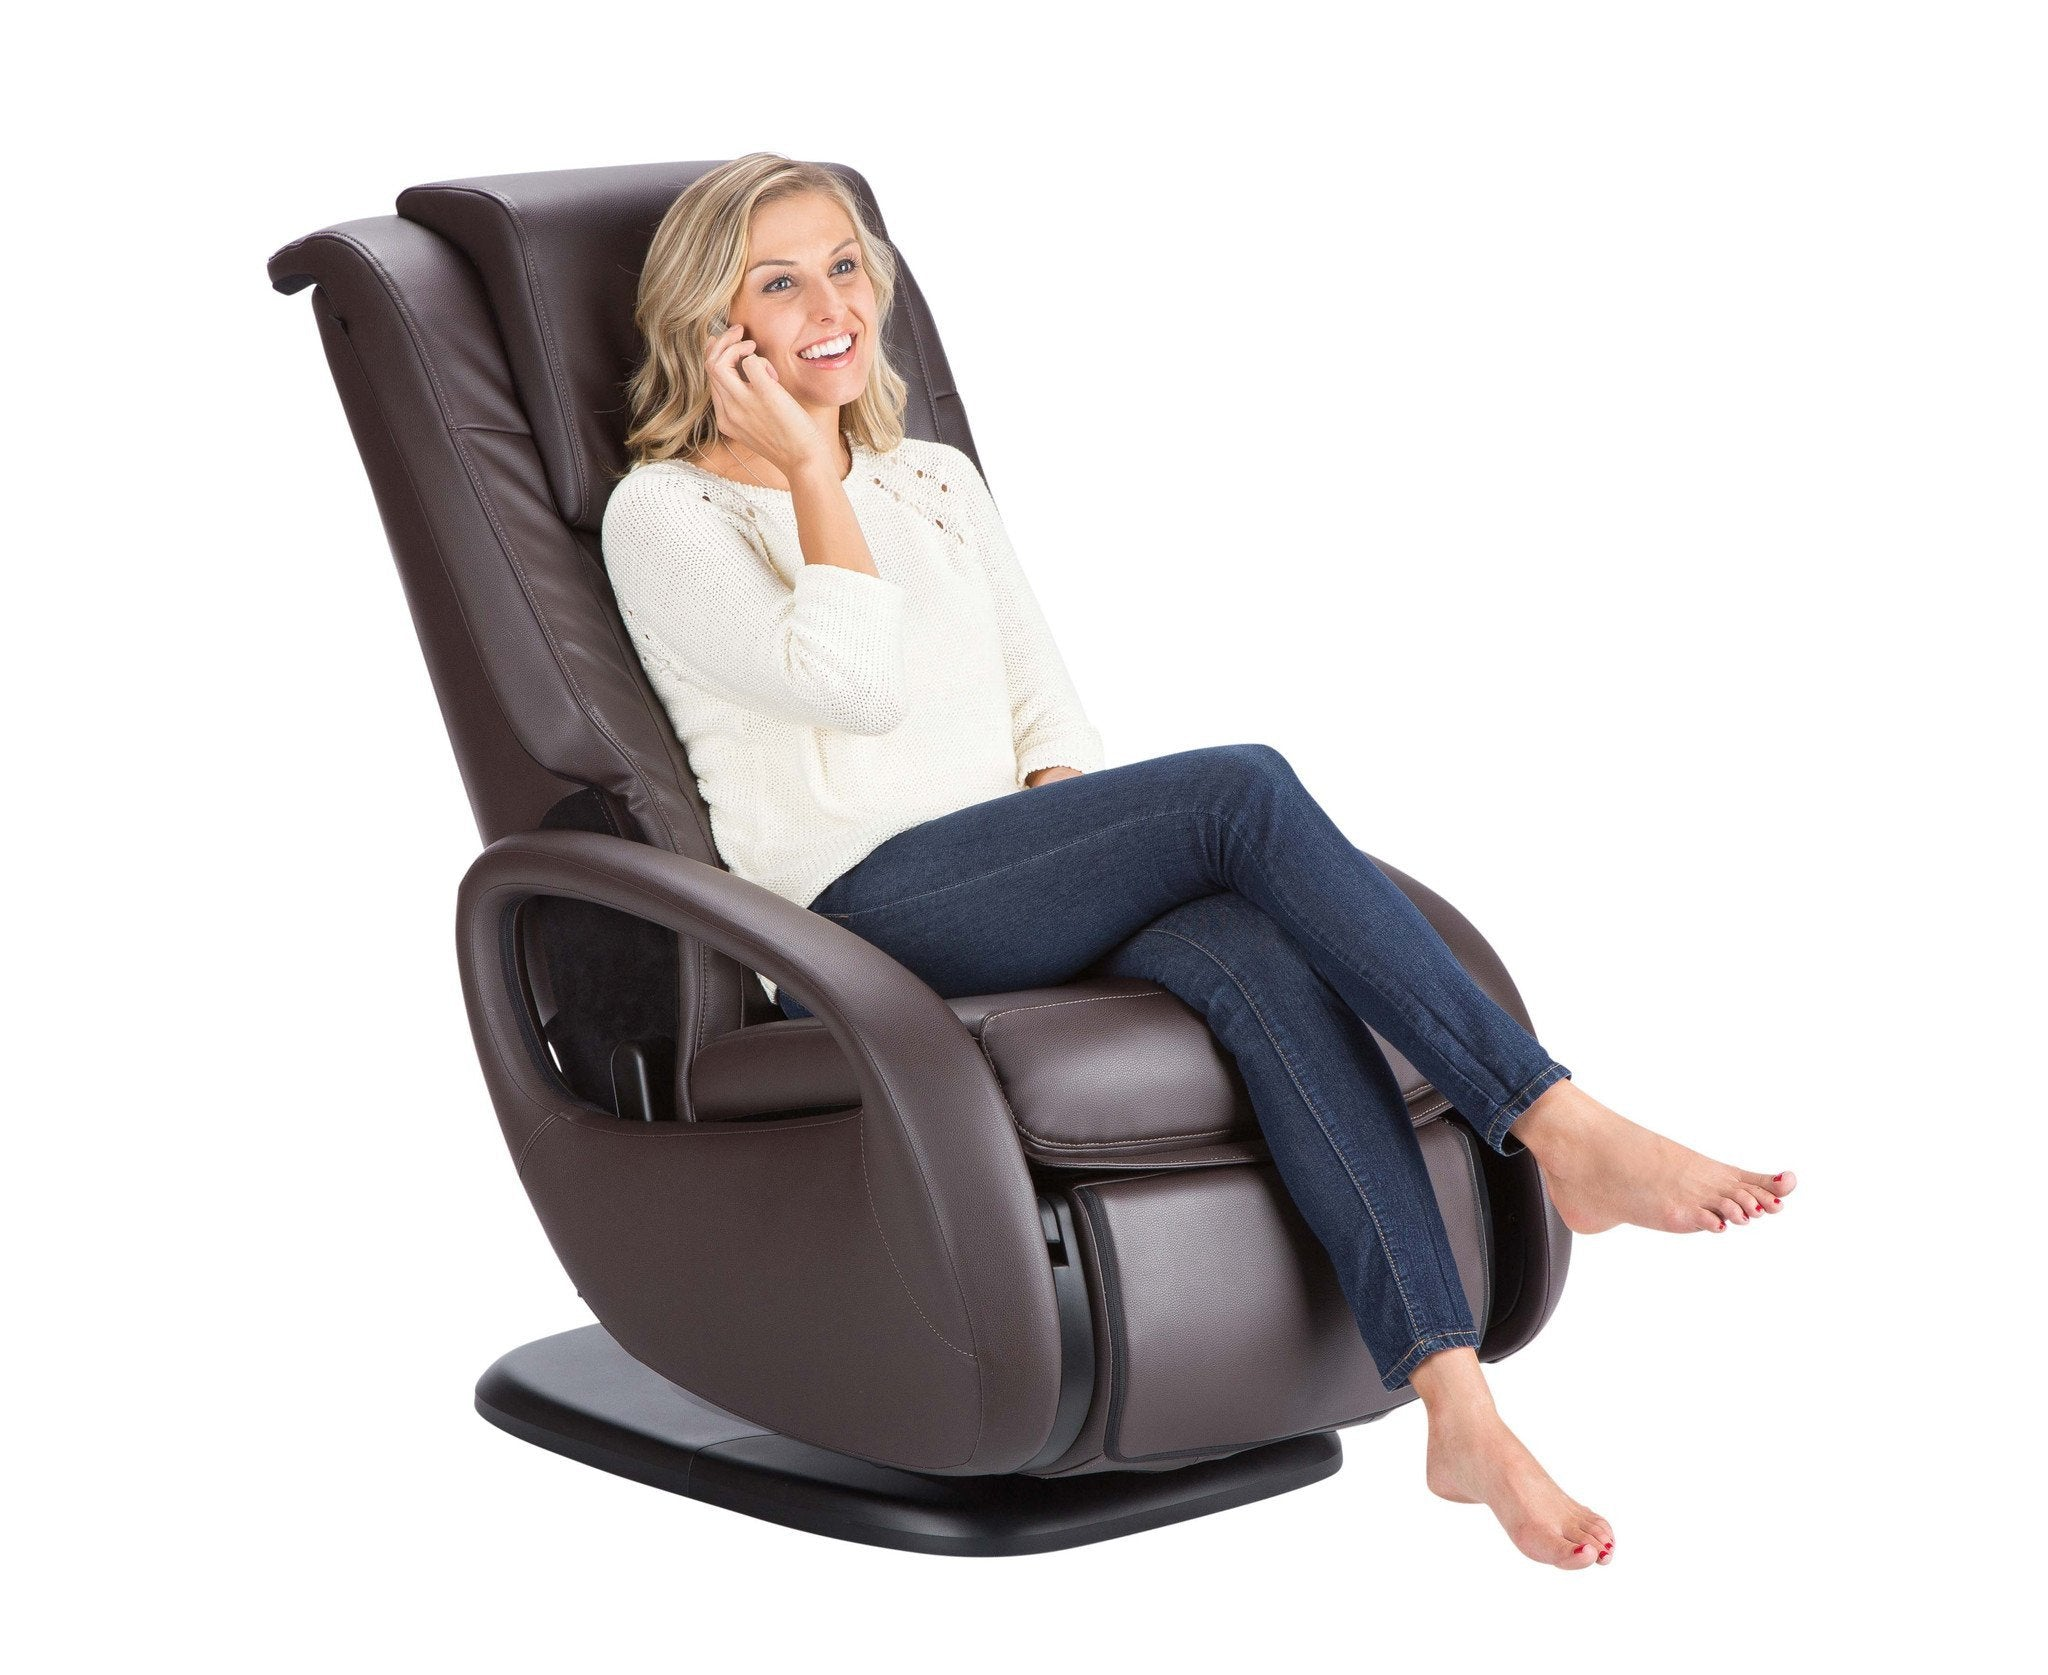 Human Touch Whole Body 7 1 Massage Chair Lowest Price Guarantee